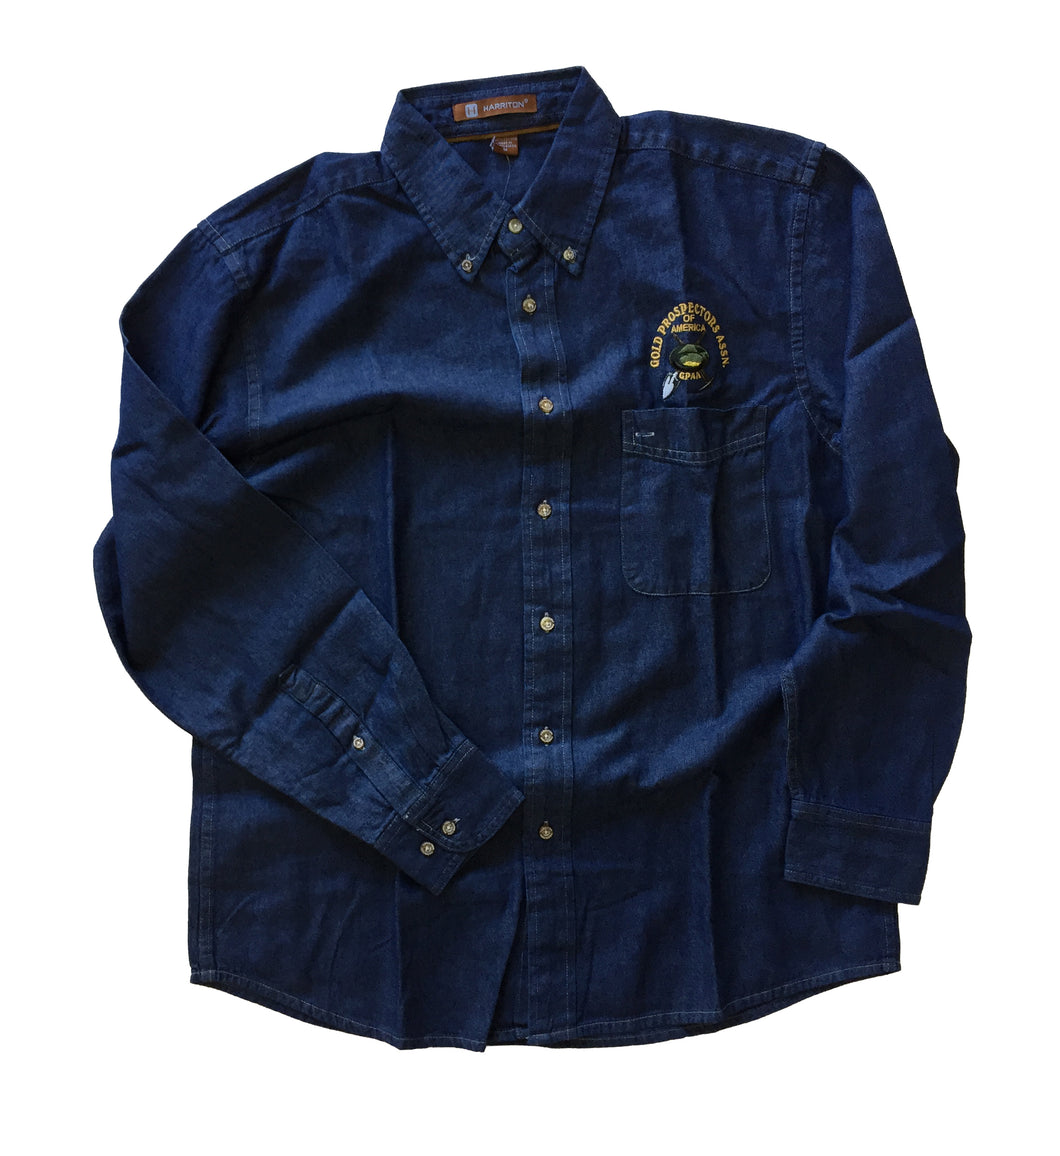 GPAA Denim Button-up Shirt